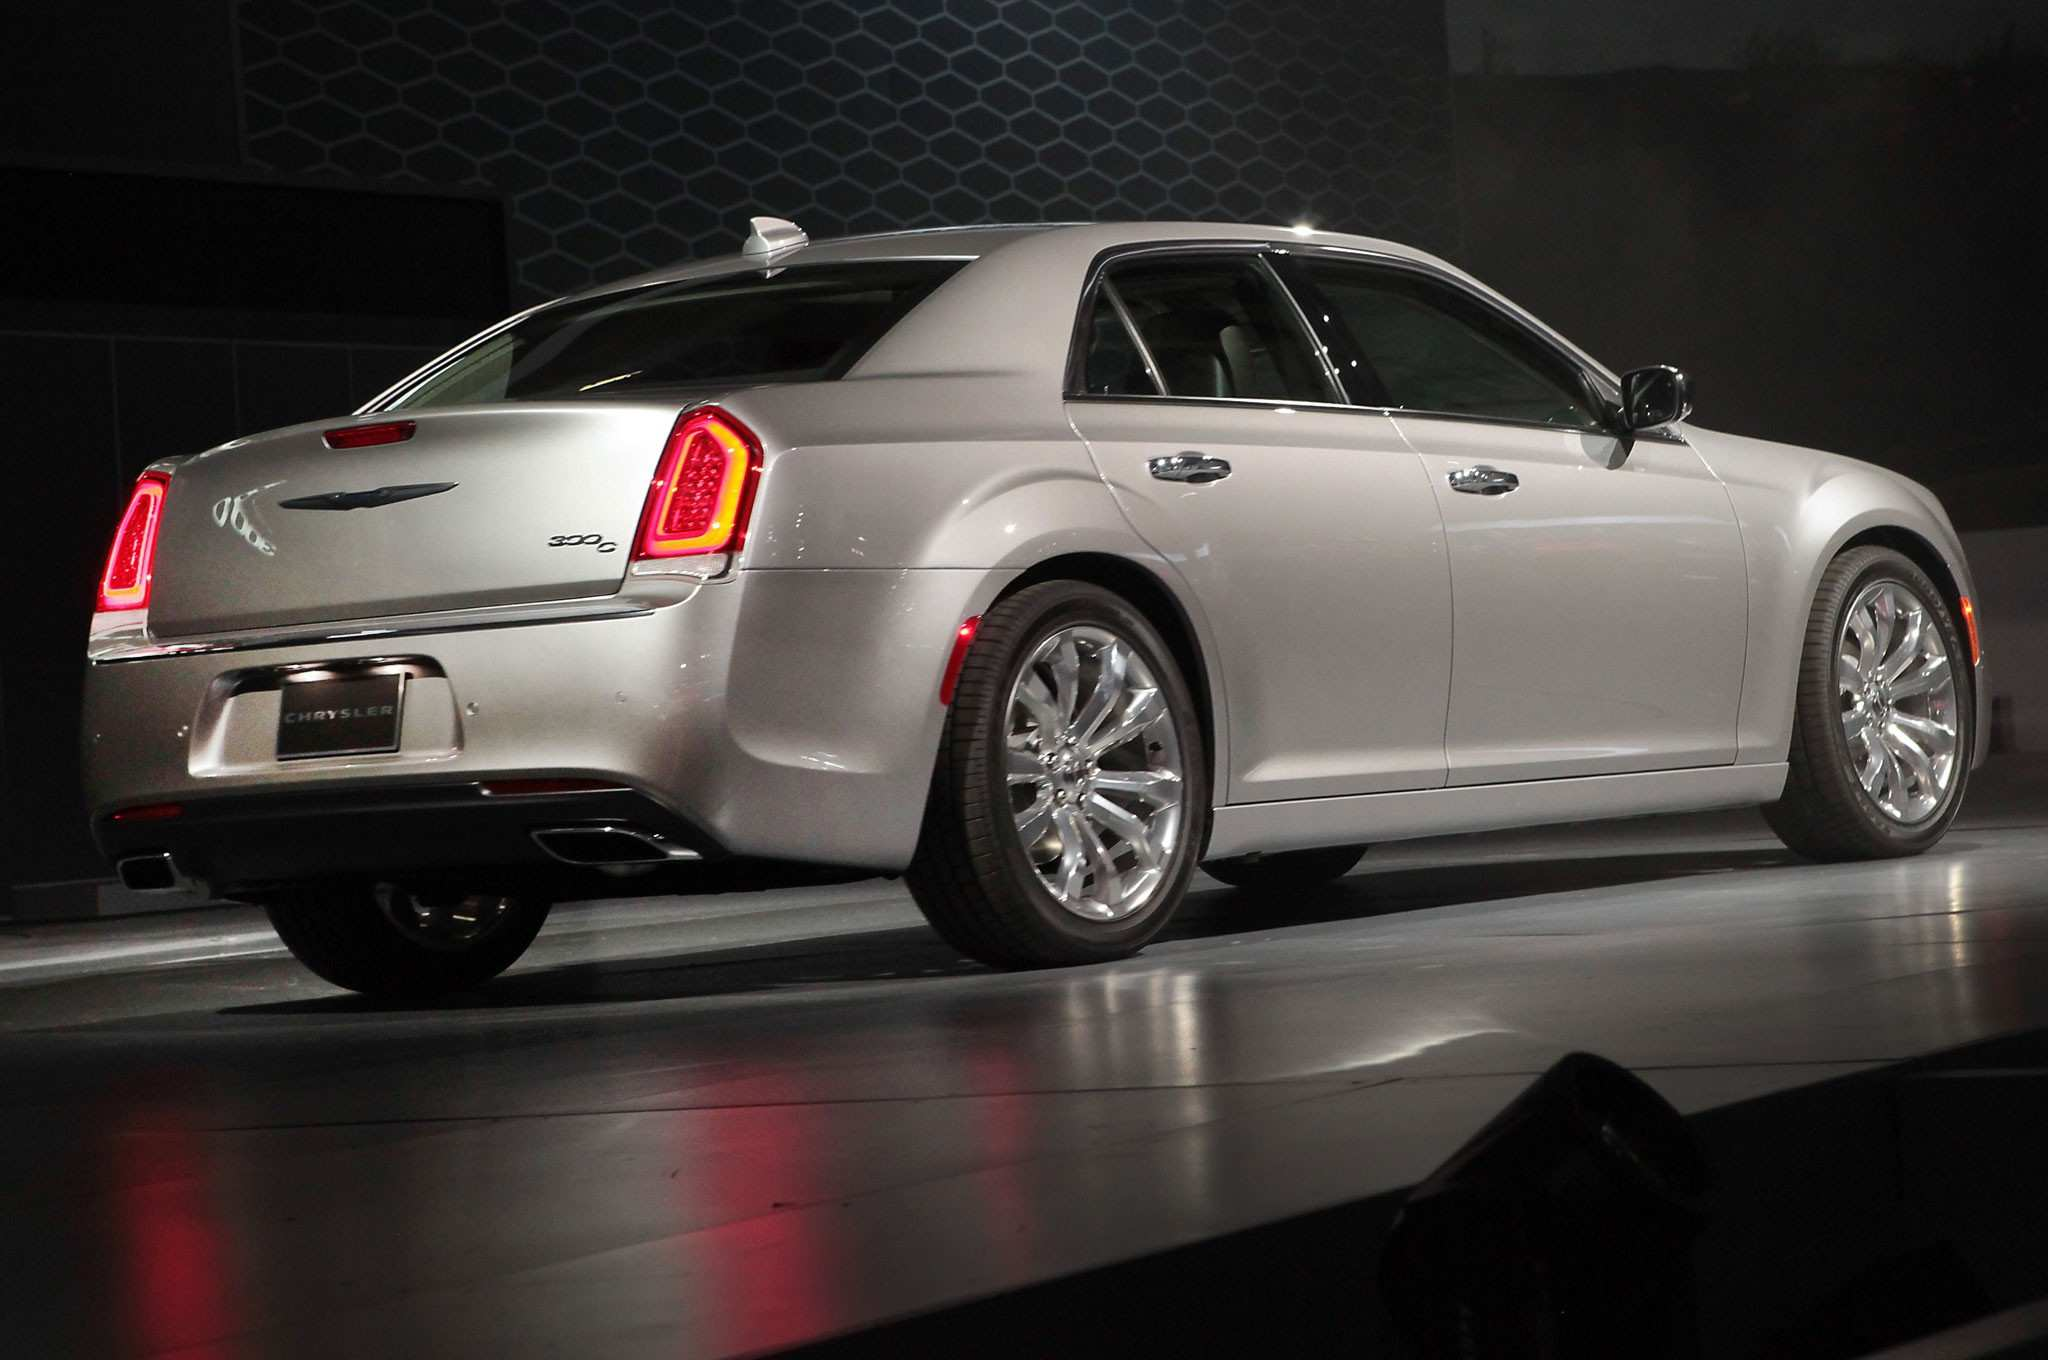 73 All New 2020 Chrysler 300 Srt 8 Reviews by 2020 Chrysler 300 Srt 8